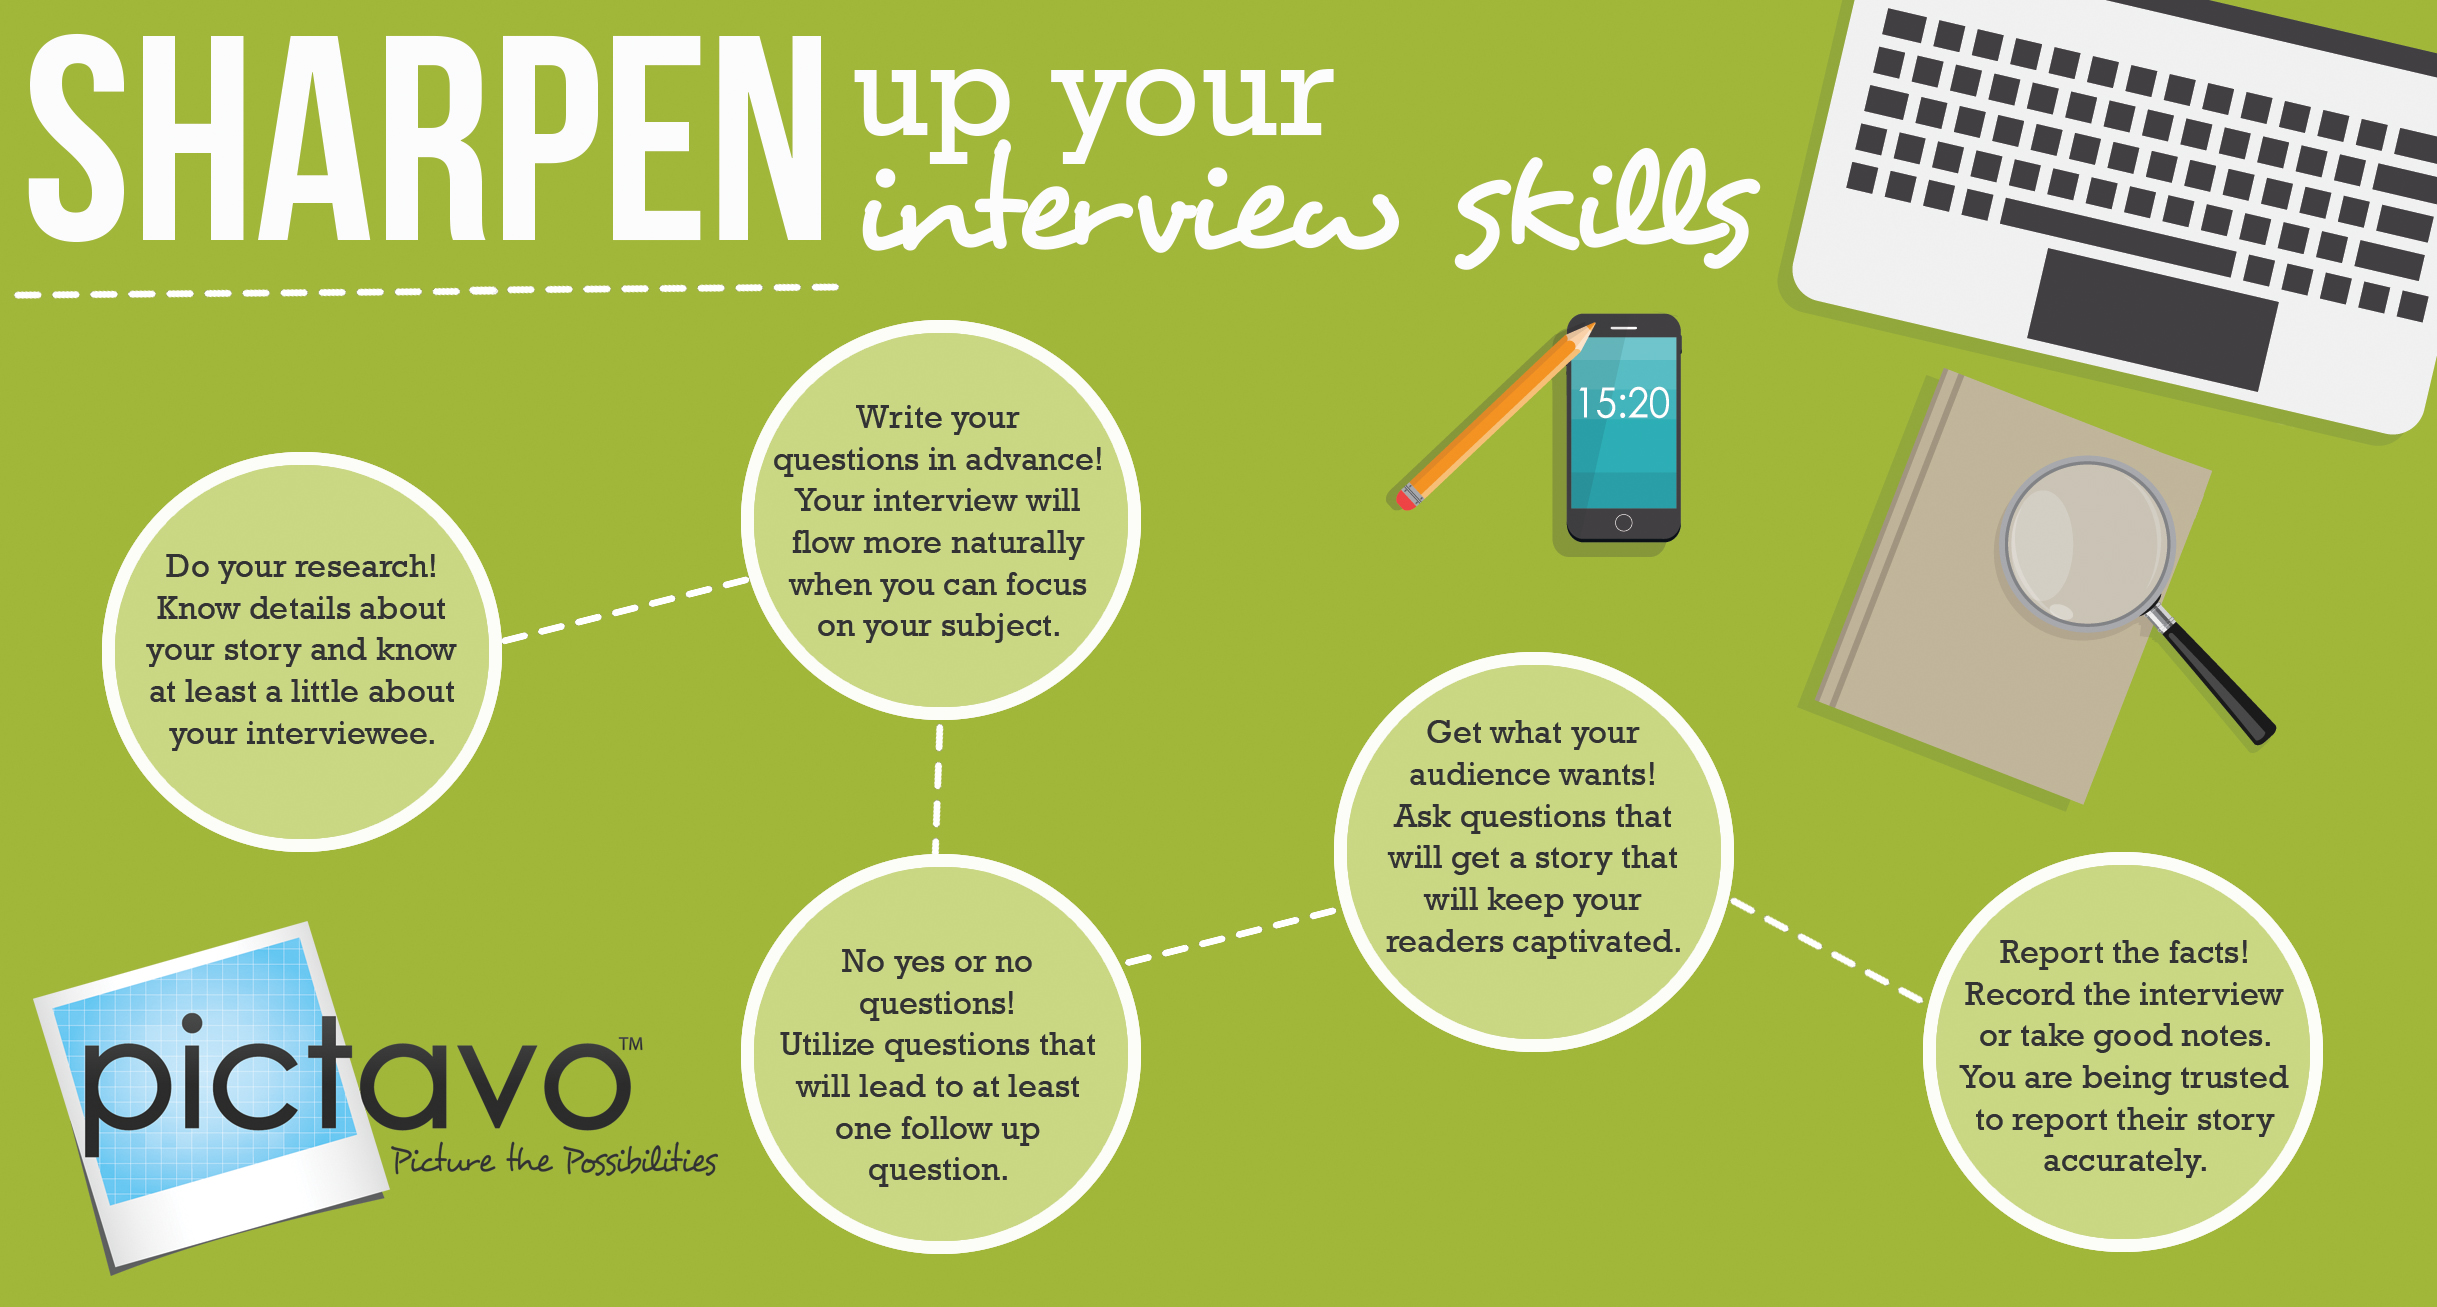 Deliver great content for your yearbook with these pointers from Pictavo!